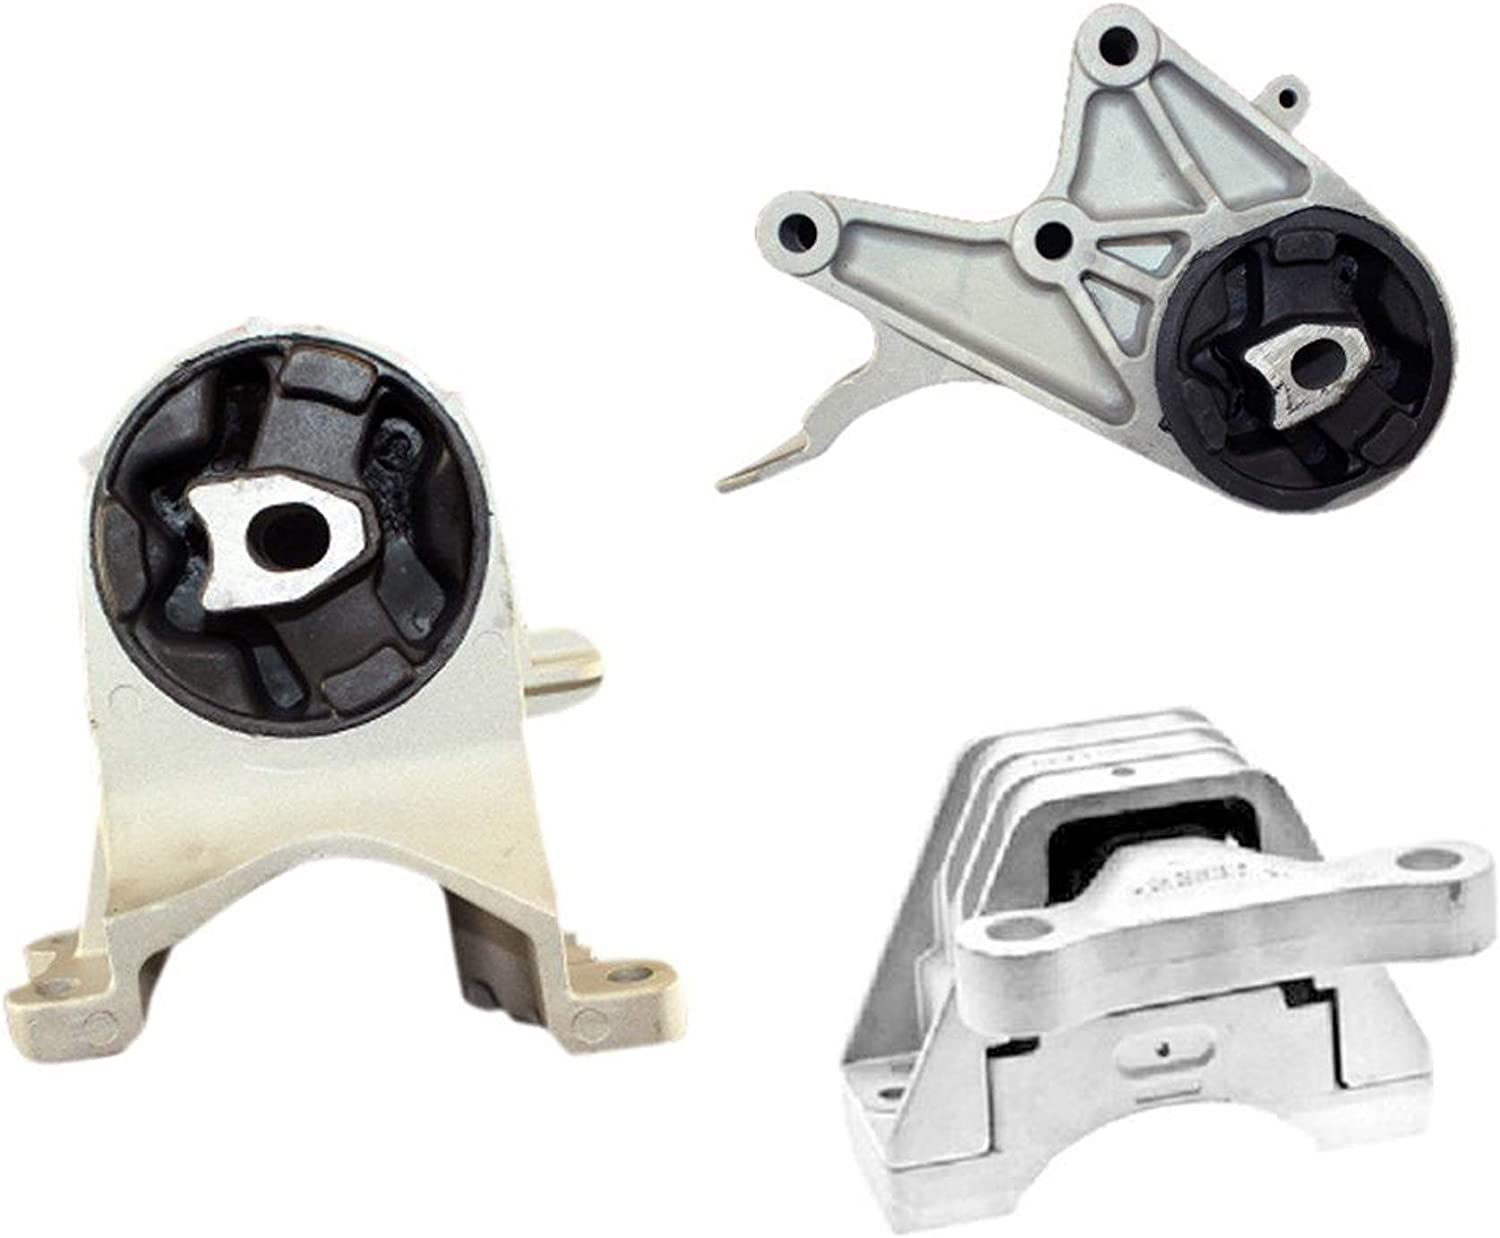 3 PCS Motor /& Trans Mount For 2009-2012 Chevrolet Malibu 2.4L 6Spd